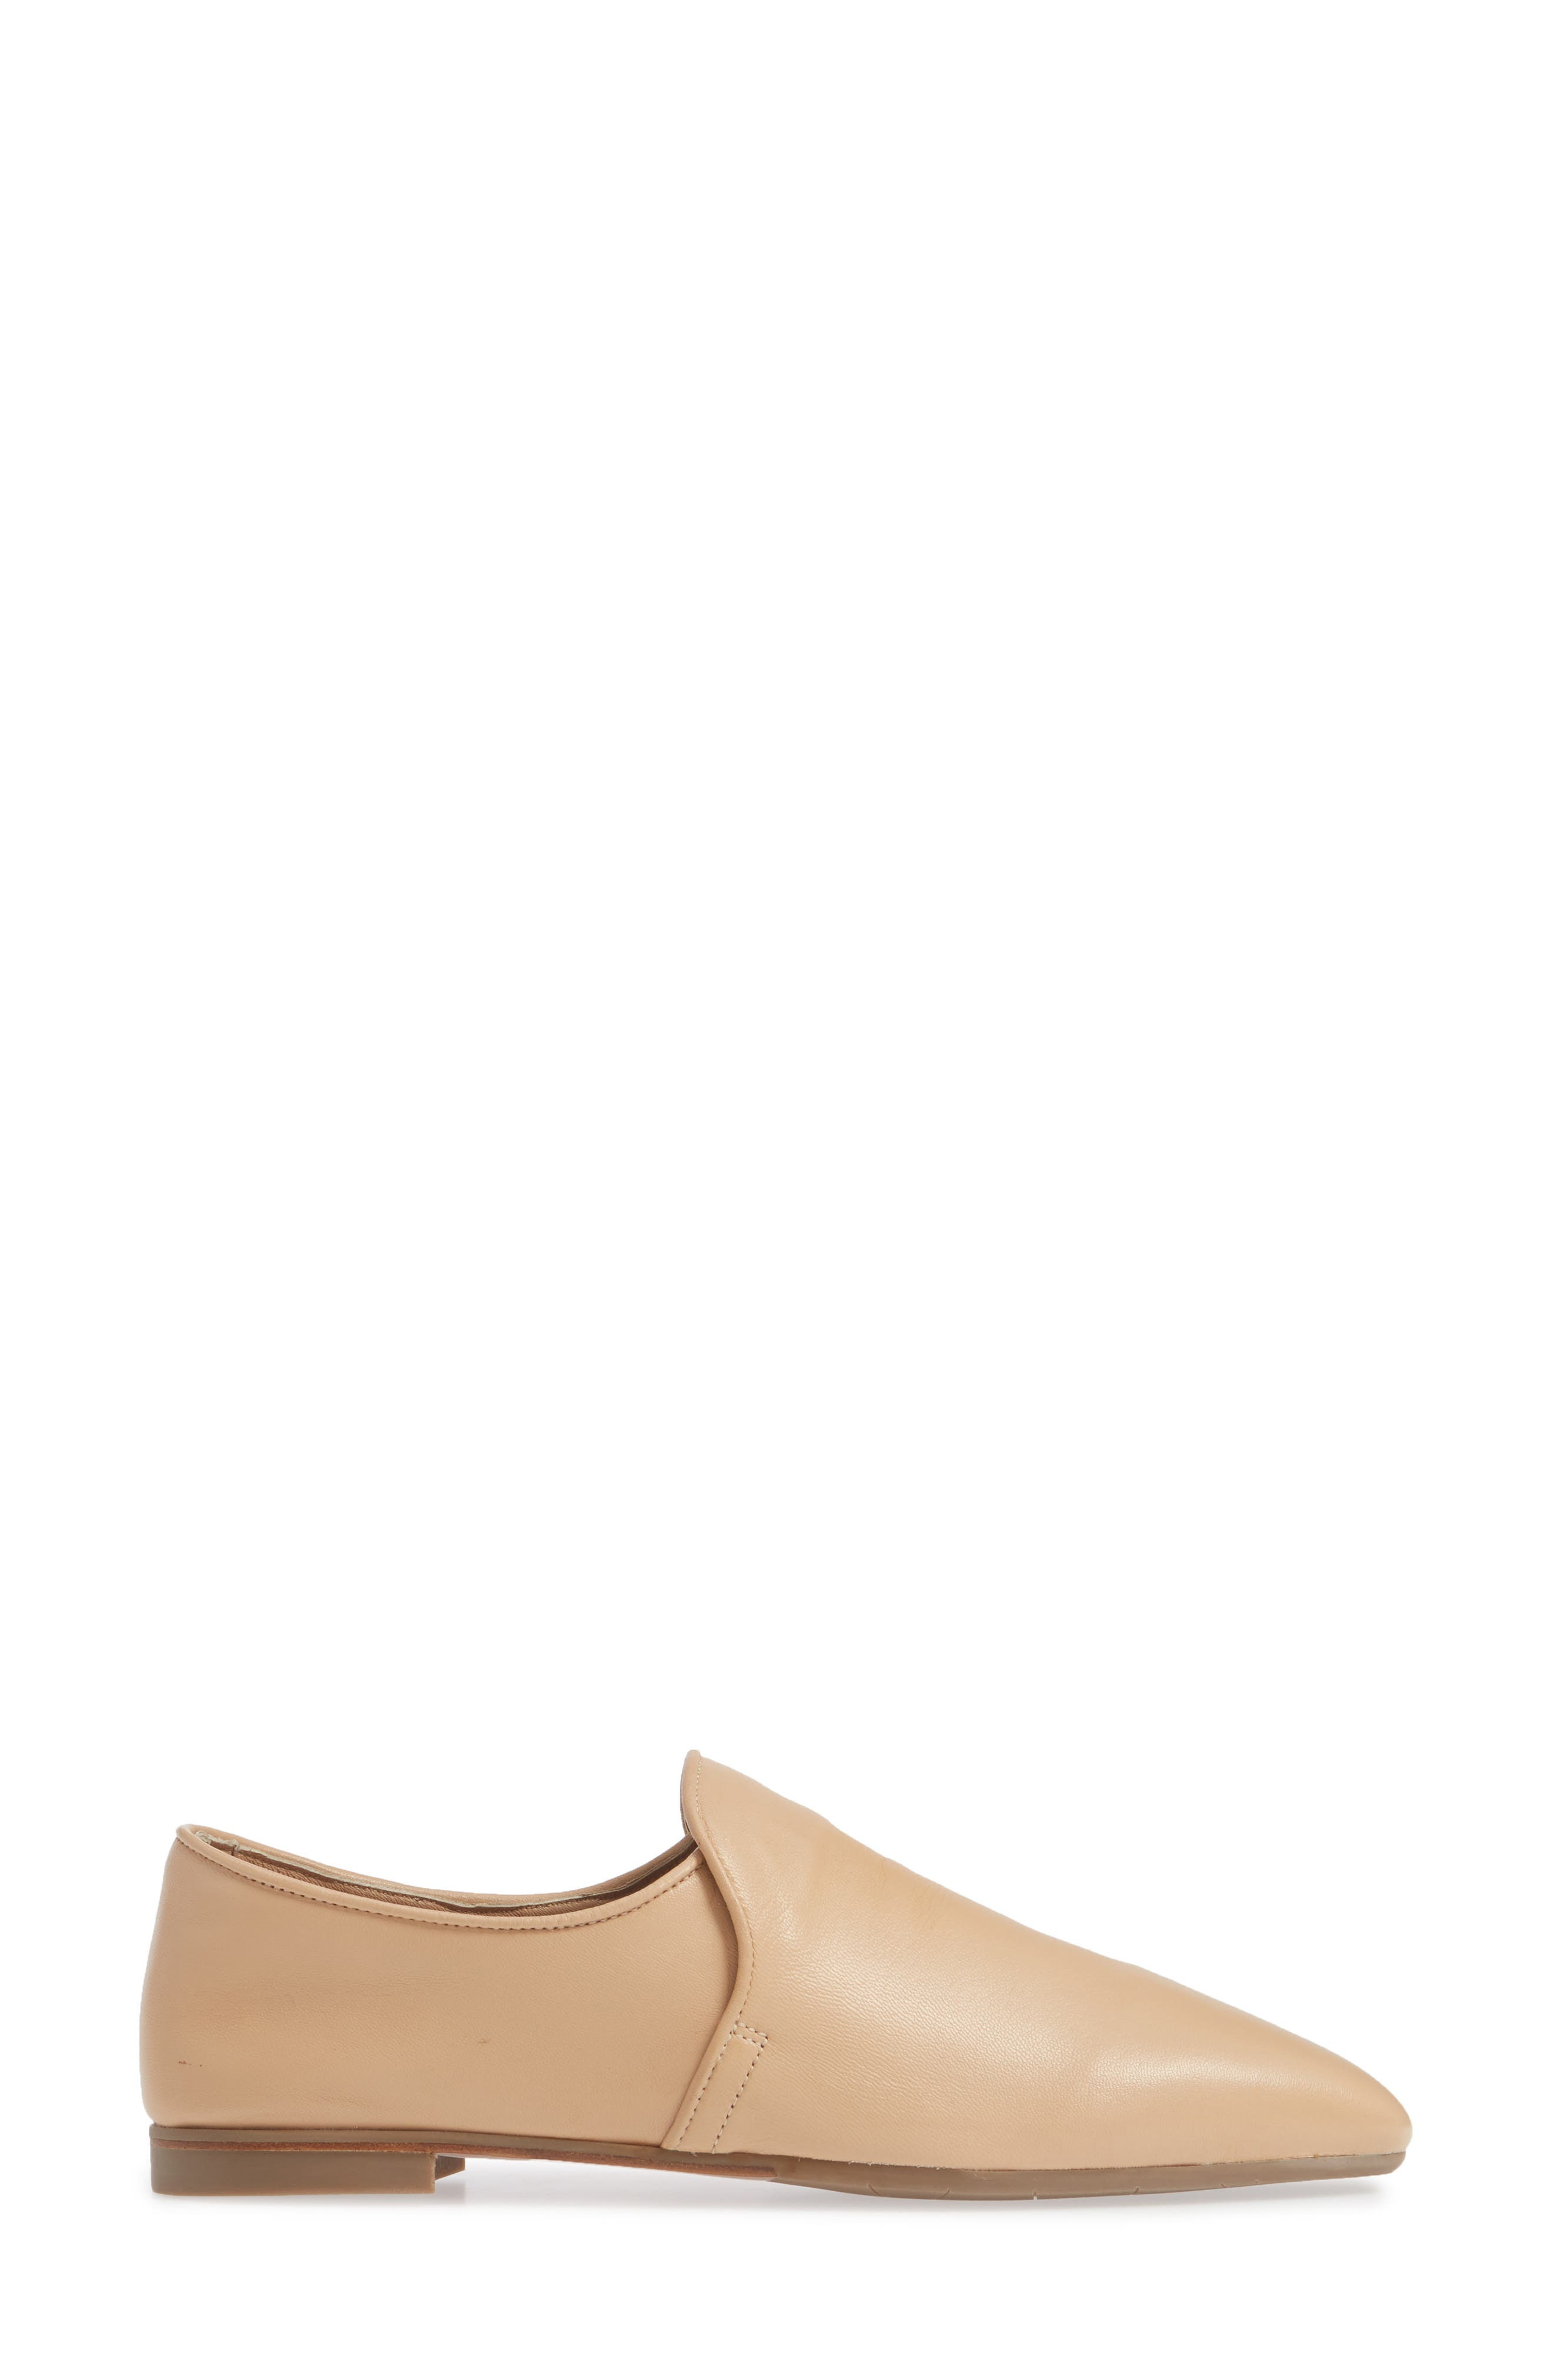 Revy Weatherporoof Loafer,                             Alternate thumbnail 3, color,                             NUDE NAPPA